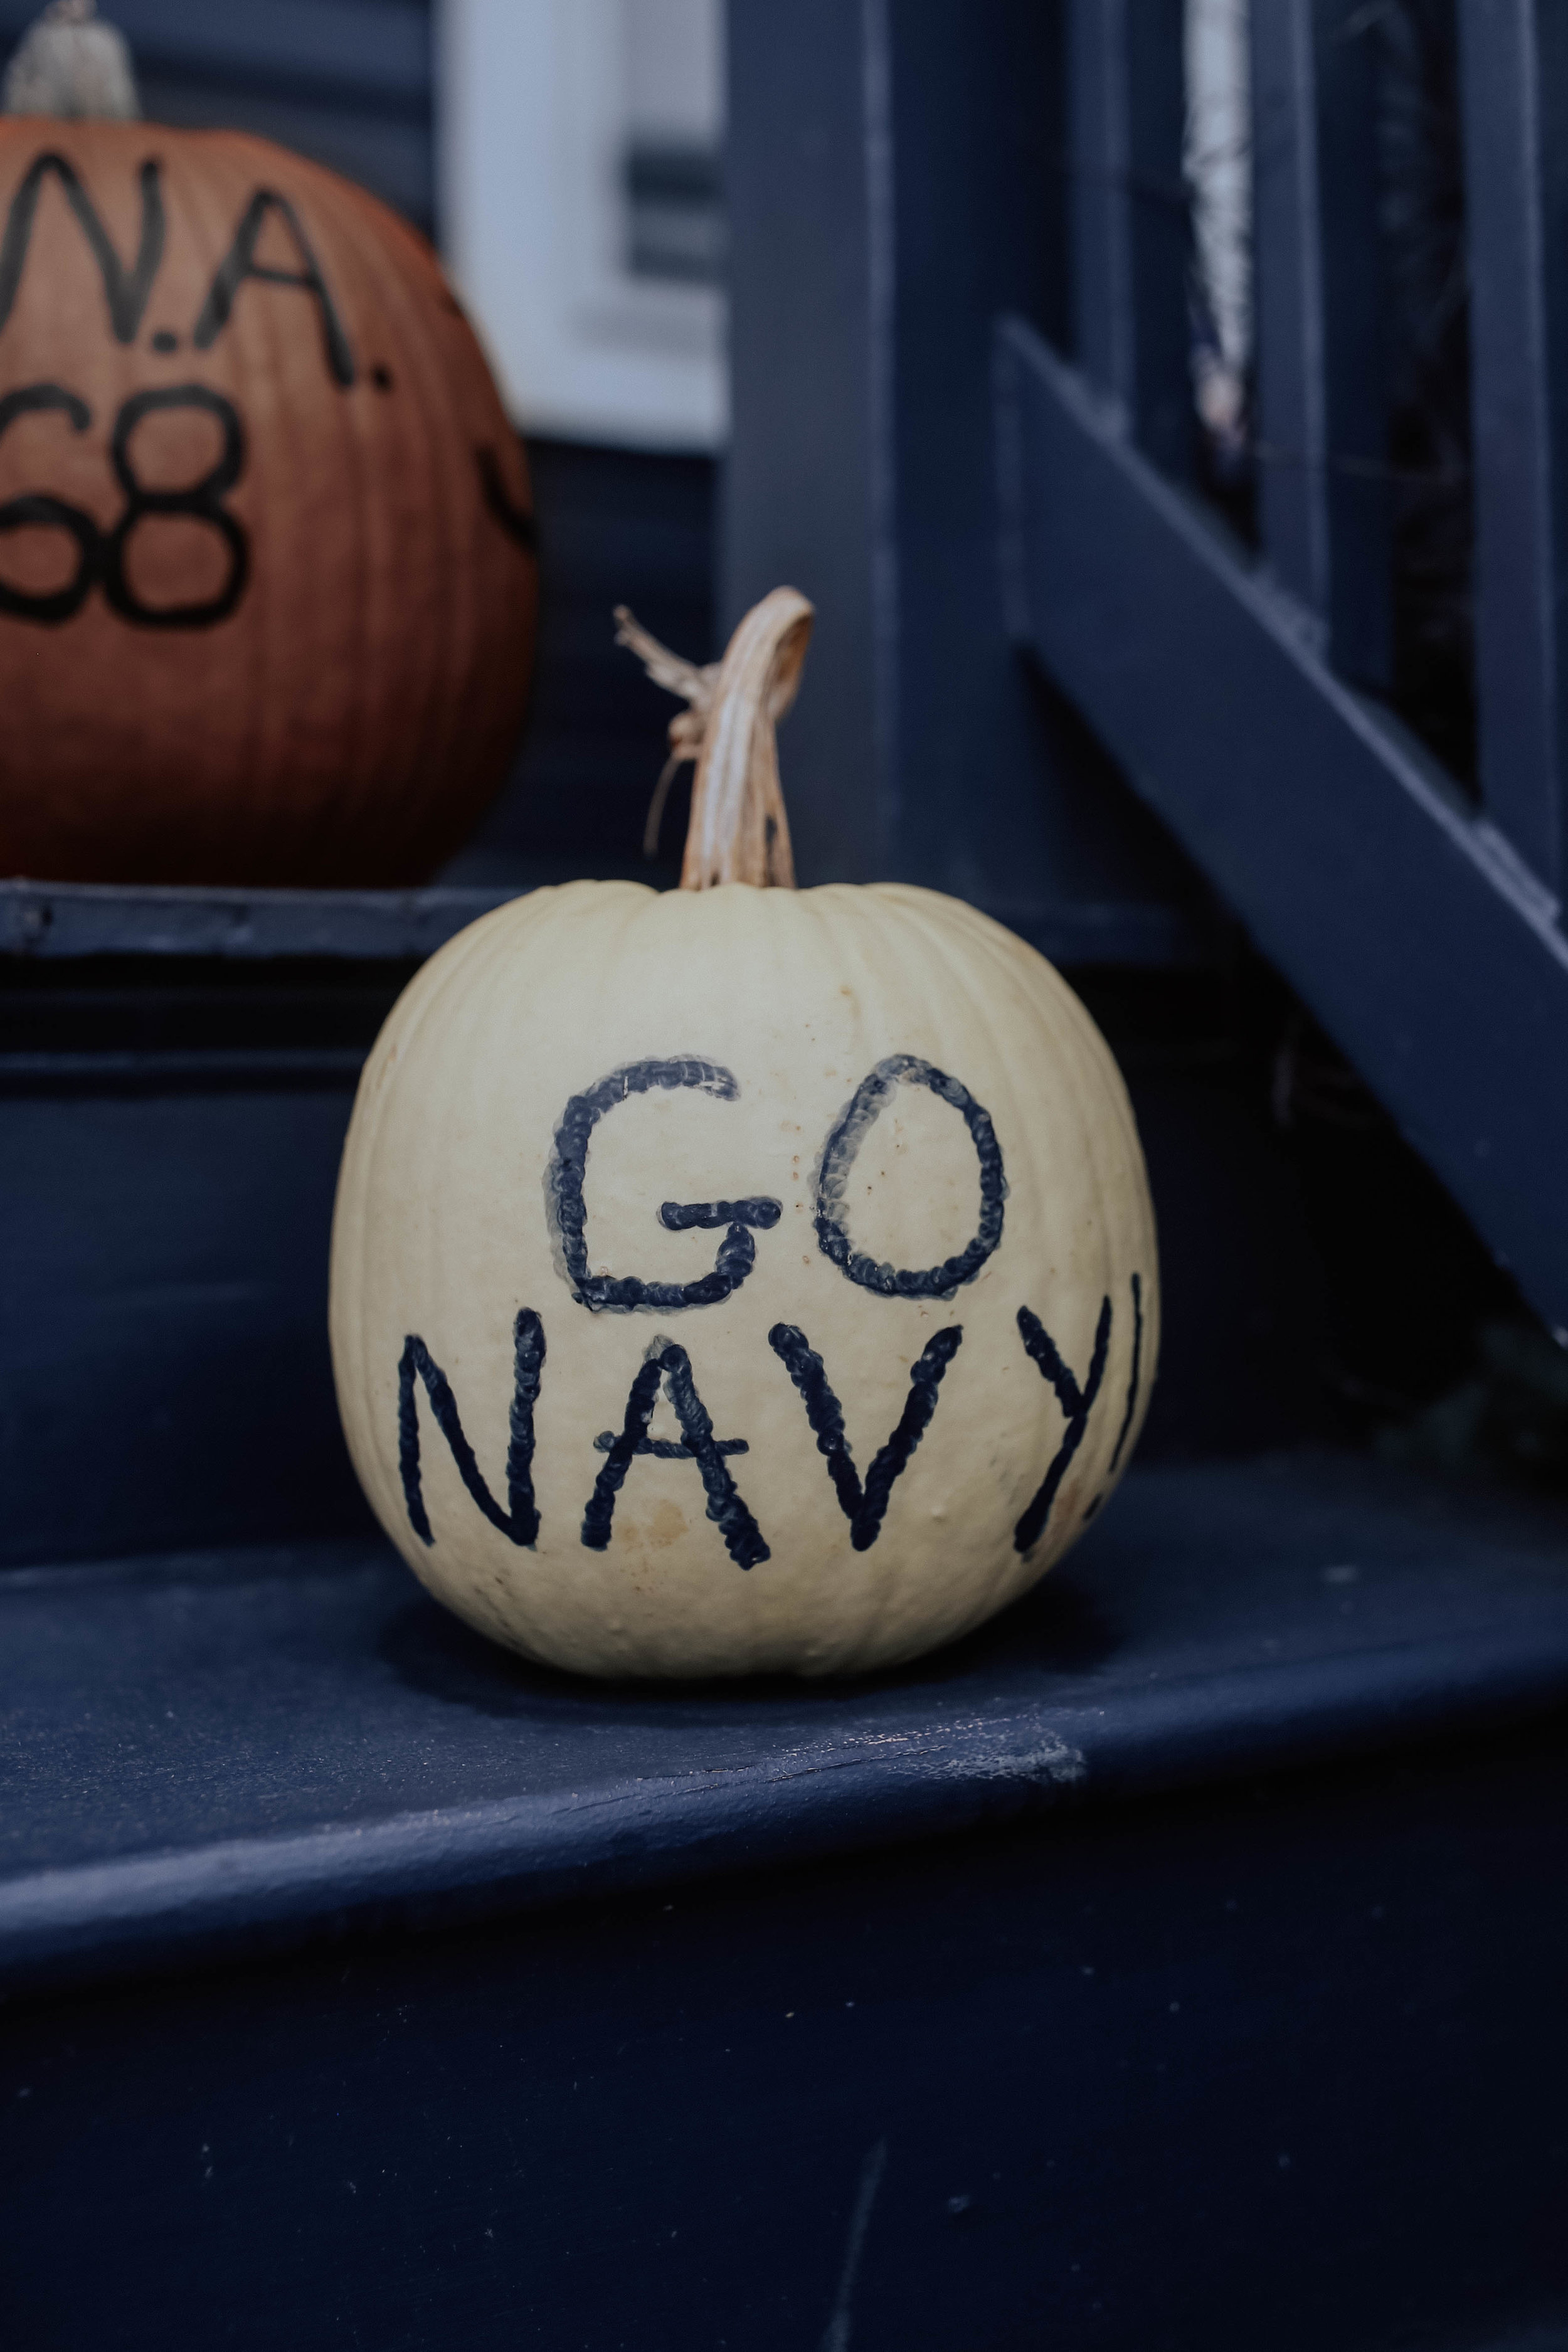 """- hi! these photos are from last weekend when we were in Annapolis.i have been to quite a few universities (give or take the one time i refused to get out of the car because """"there was too much concrete"""" 🤦🏻♀️) and i have to say the Naval Academy is second to NONE.the way in which the midshipmen conduct themselves is so admirable and you can't walk around without thinking about how accomplished and disciplined everyone is. just look at their daily schedule and you'll see what i mean.my dad was a gymnast so we got to visit the current team at practice - i honestly tried to not make a lot of eye contact because when i tumbled (manyyyy years ago) i used to hate visitors at practice cause i would always mess up more. so i didn't actually watch too much but what a talented bunch. i mean the entire campus just screams talent. but more importantly.. the hard work to back it up.we also went to the game + tailgate as part of the reunion festivities. the entire school gets in formation at the start of the game, so it is more customary for them to tailgate after the game, but the regular people tailgate before.lastly (although these photos come first in the blog post 🤷🏻♀️), the town of annapolis is so pretty! i loved seeing all of the houses decorated for fall (especially the go navy pumpkins!) and if you ever visit, you must stop by Old Fox books!not gonna lie, i have no food recommendations because there was a Chipotle at the mall. and sometimes you need to eat at a chain to combat homesickness, ya know?thank you for reading 💙"""